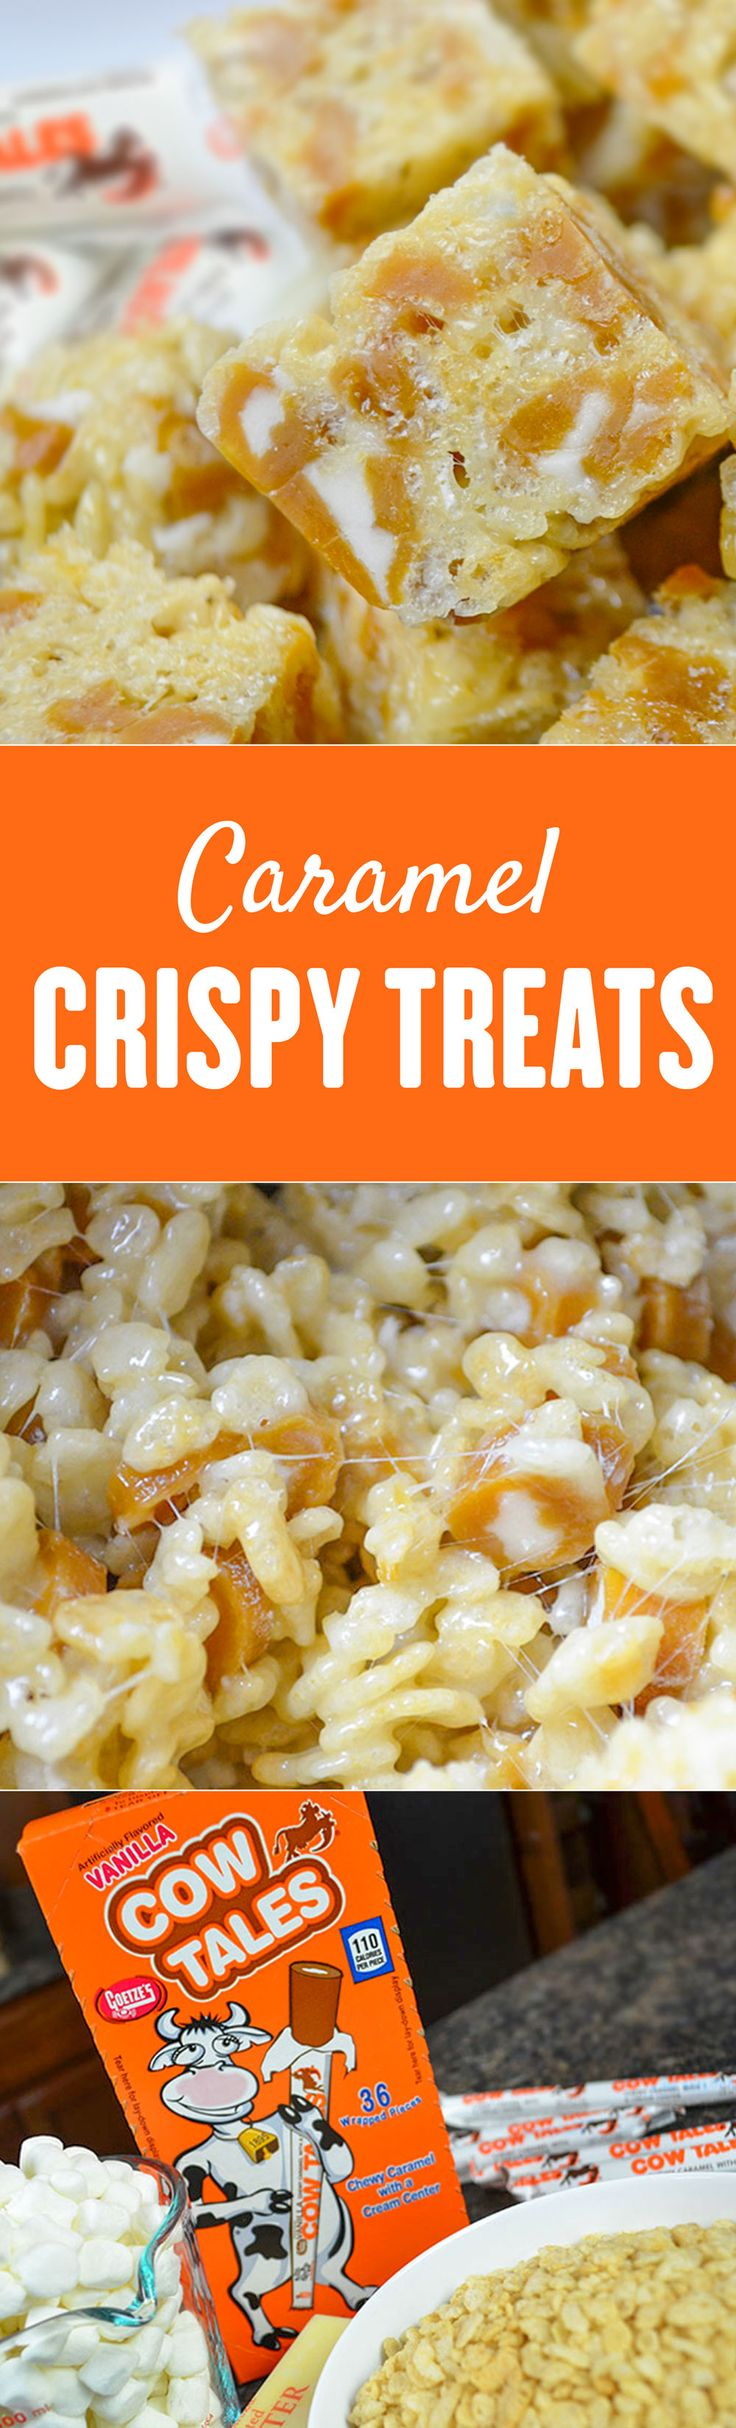 THE BEST! Everyone LOVES these caramel crispy treats made with Cow Tales! Be sure to double the recipe for parties!